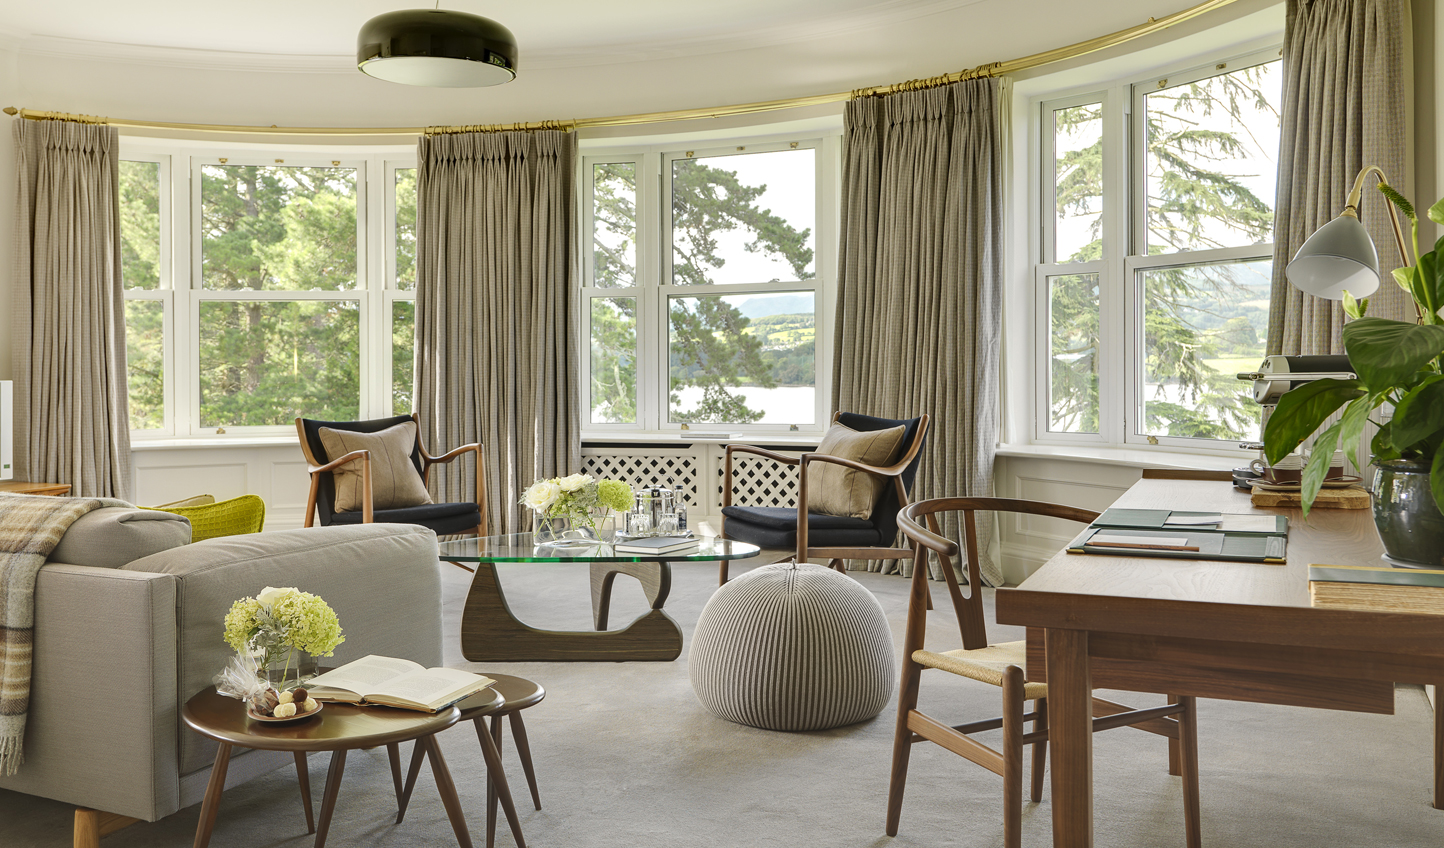 Kick back and relax while gazing out at breathtaking views